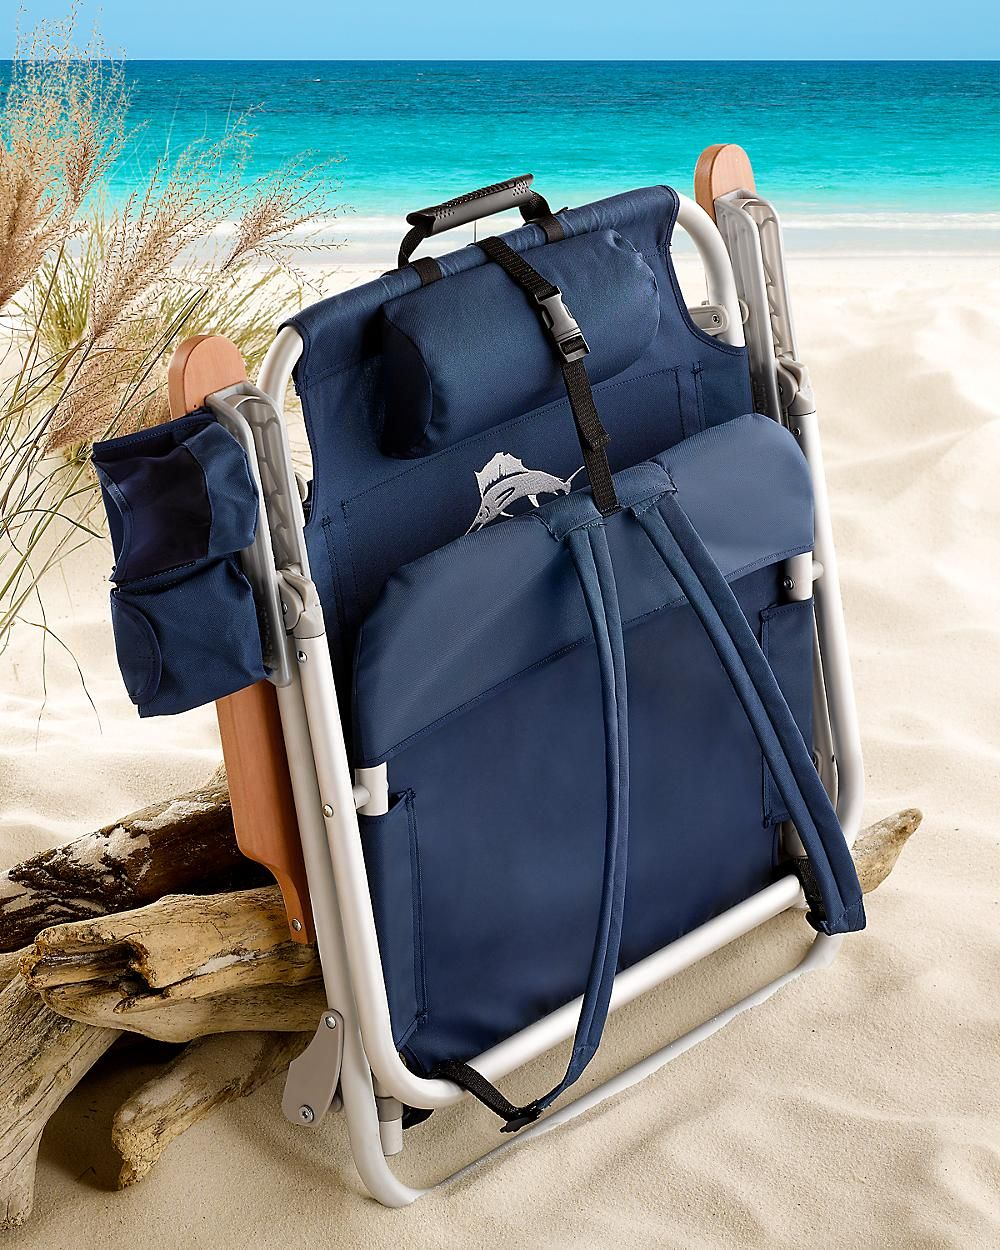 Tommy Bahama beachconcert chair Navy Deluxe Backpack Beach – Deluxe Beach Chairs